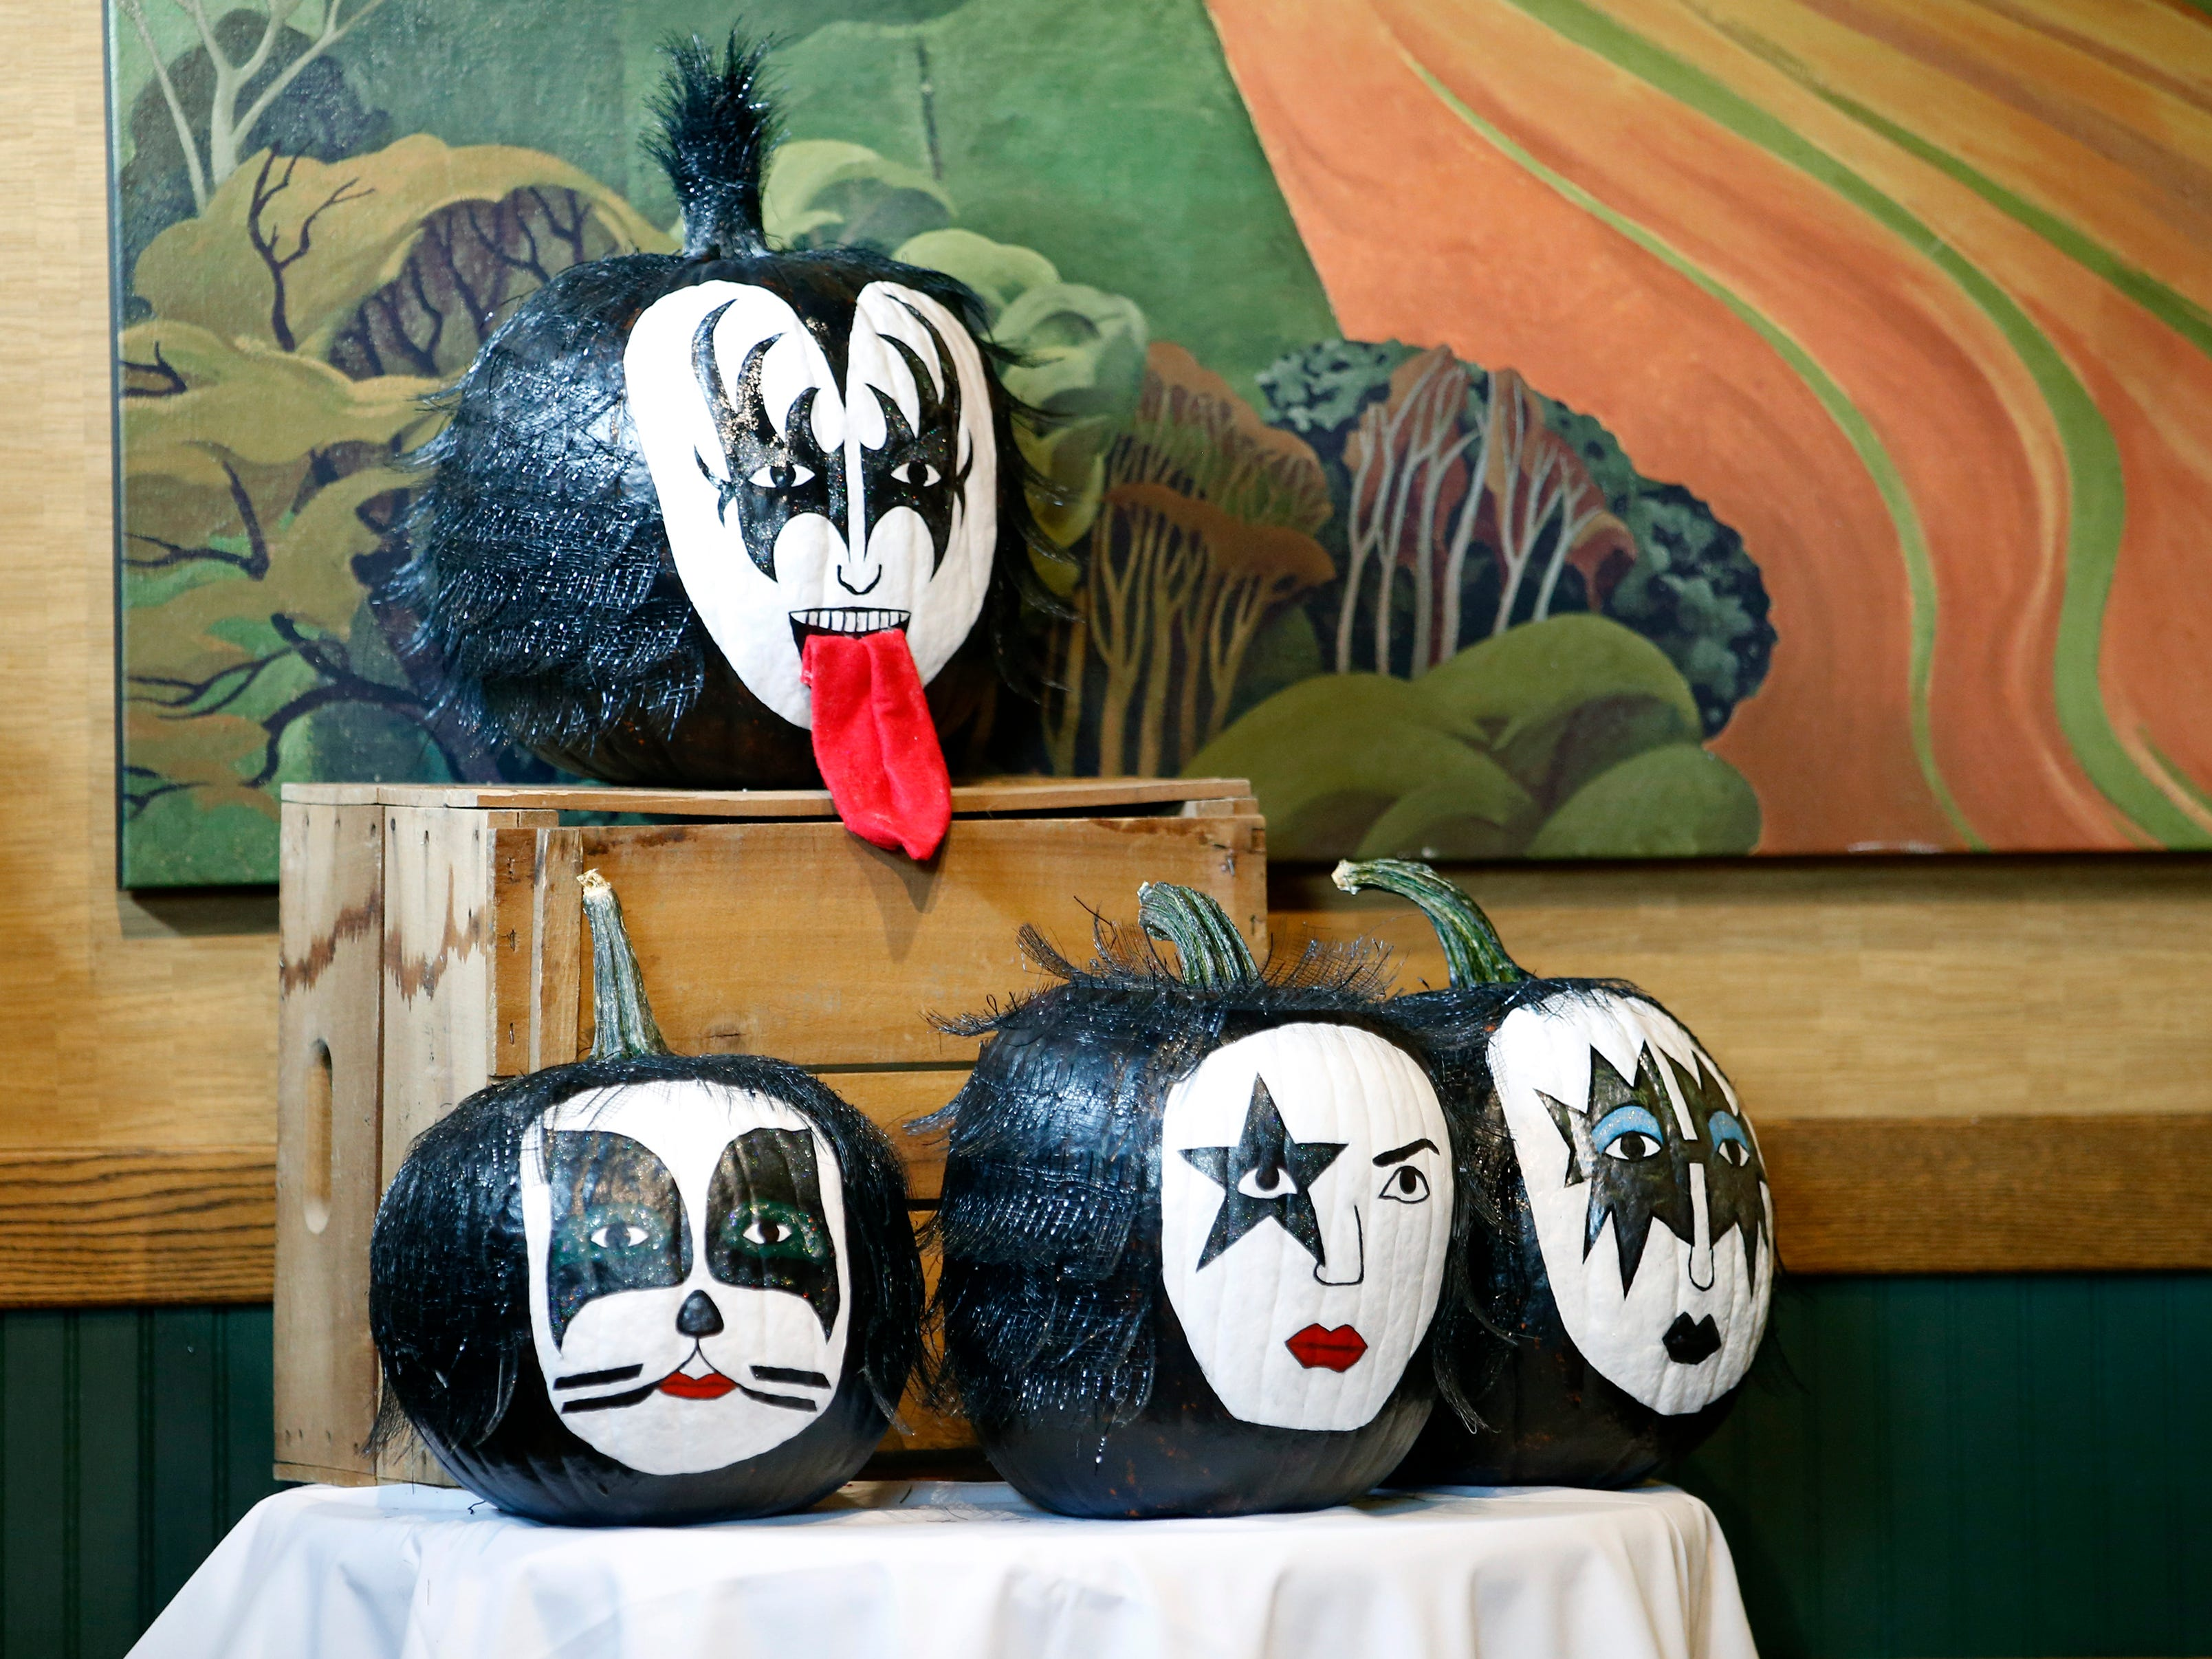 A pumpkin display was setup for an appearance by KISS co-founder Gene Simmons at the Chili-Paul Wegmans store to promote his MoneyBag Sodas.